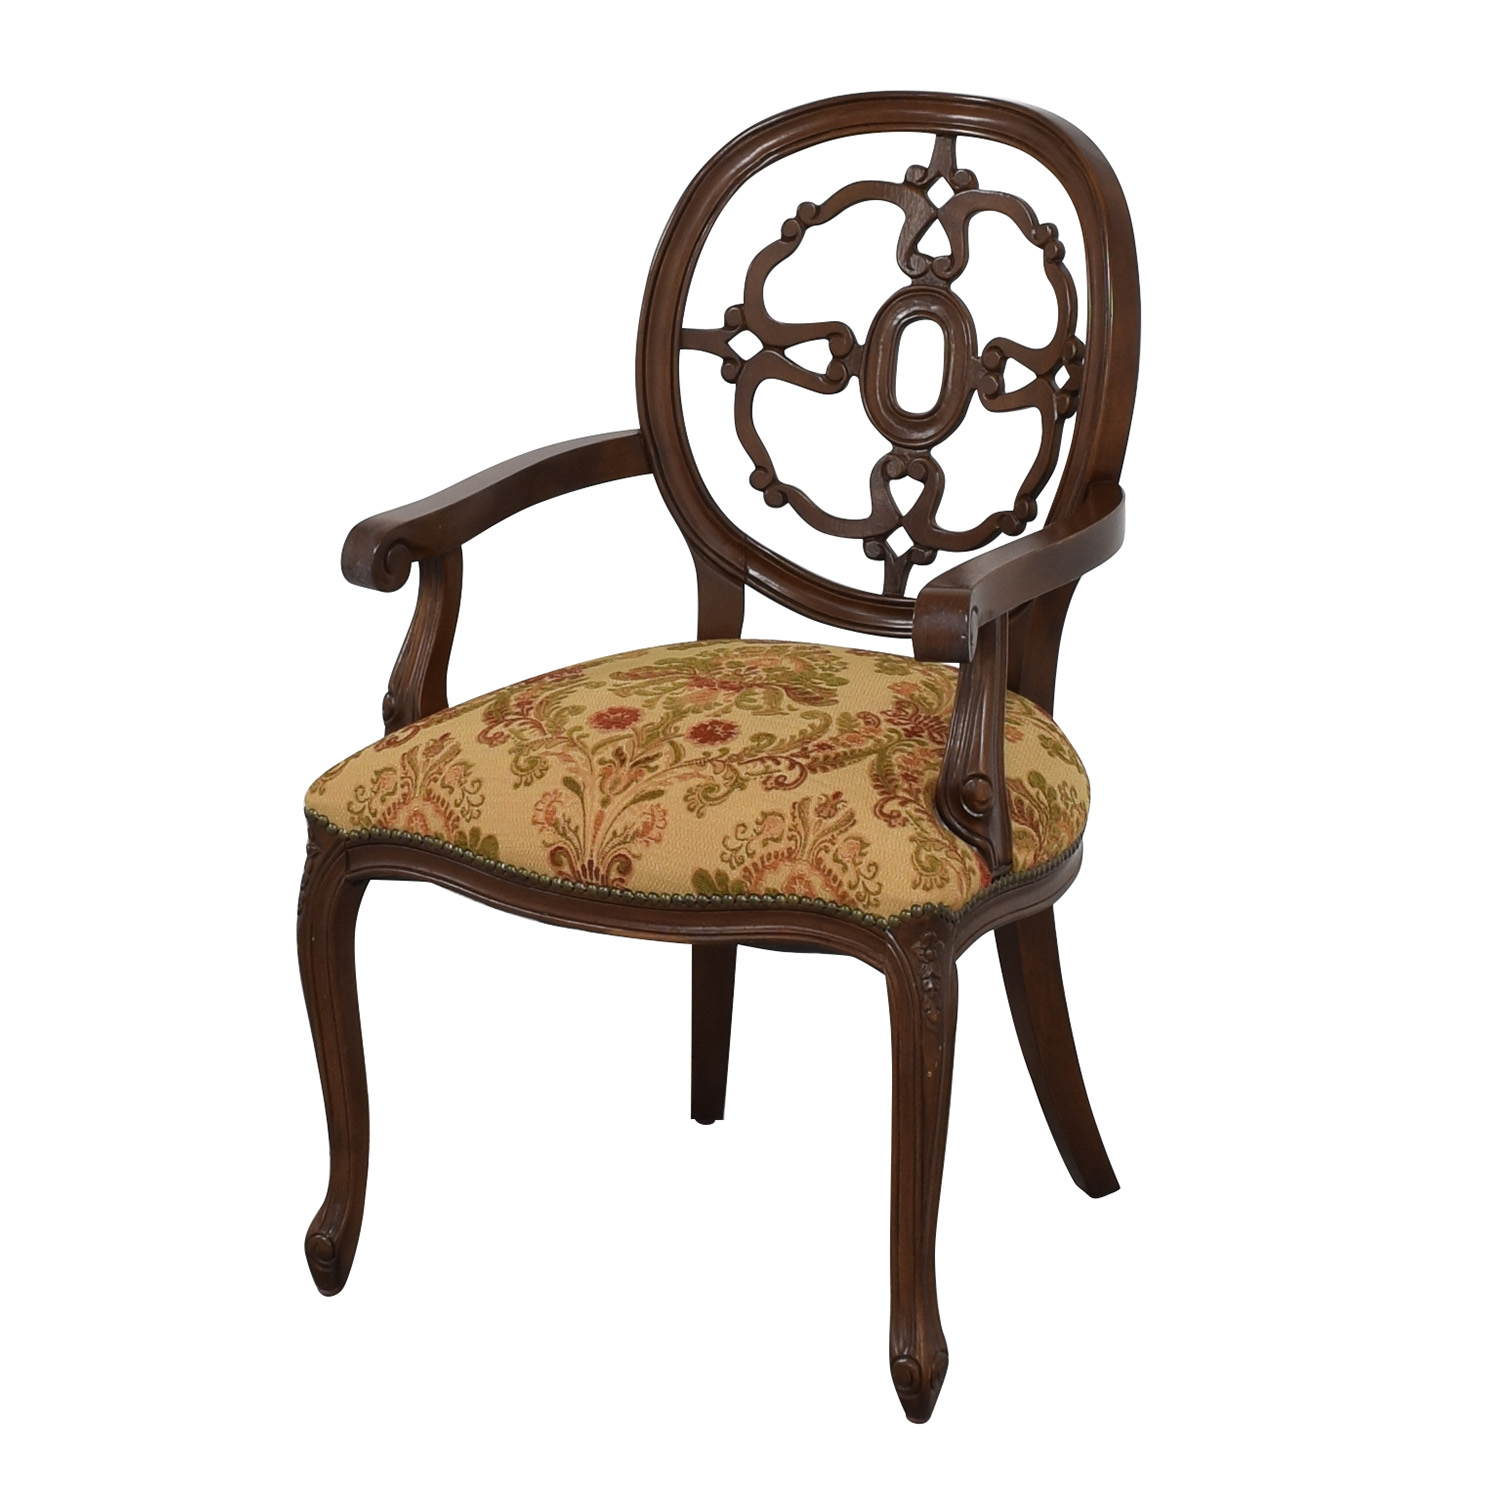 Floral Upholstered Armchairs with Antique Finish multi